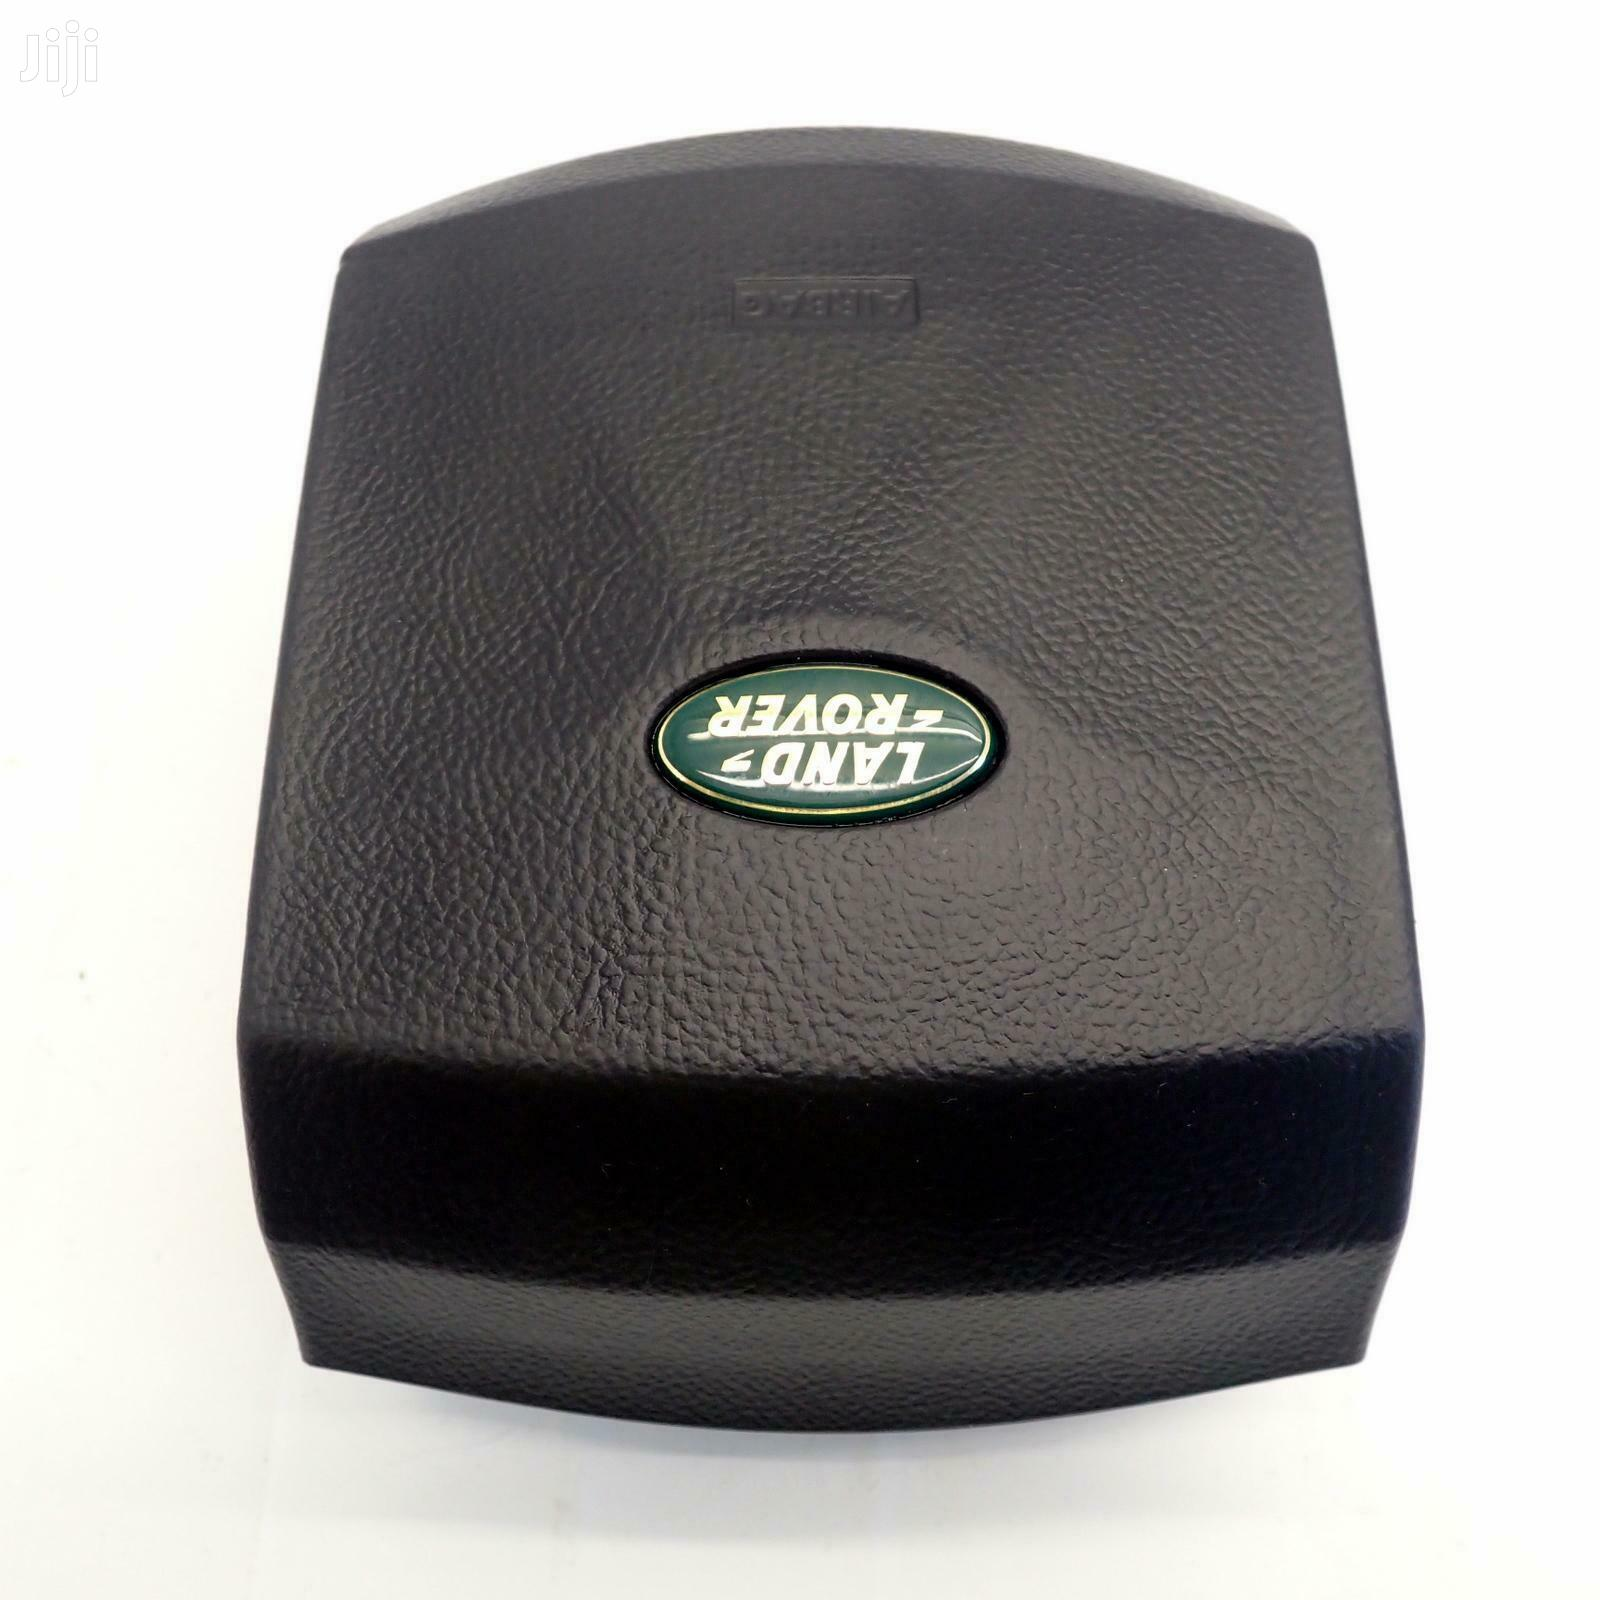 Steering Wheel Airbag Land Rover Discovery 3 2.7 TDV6